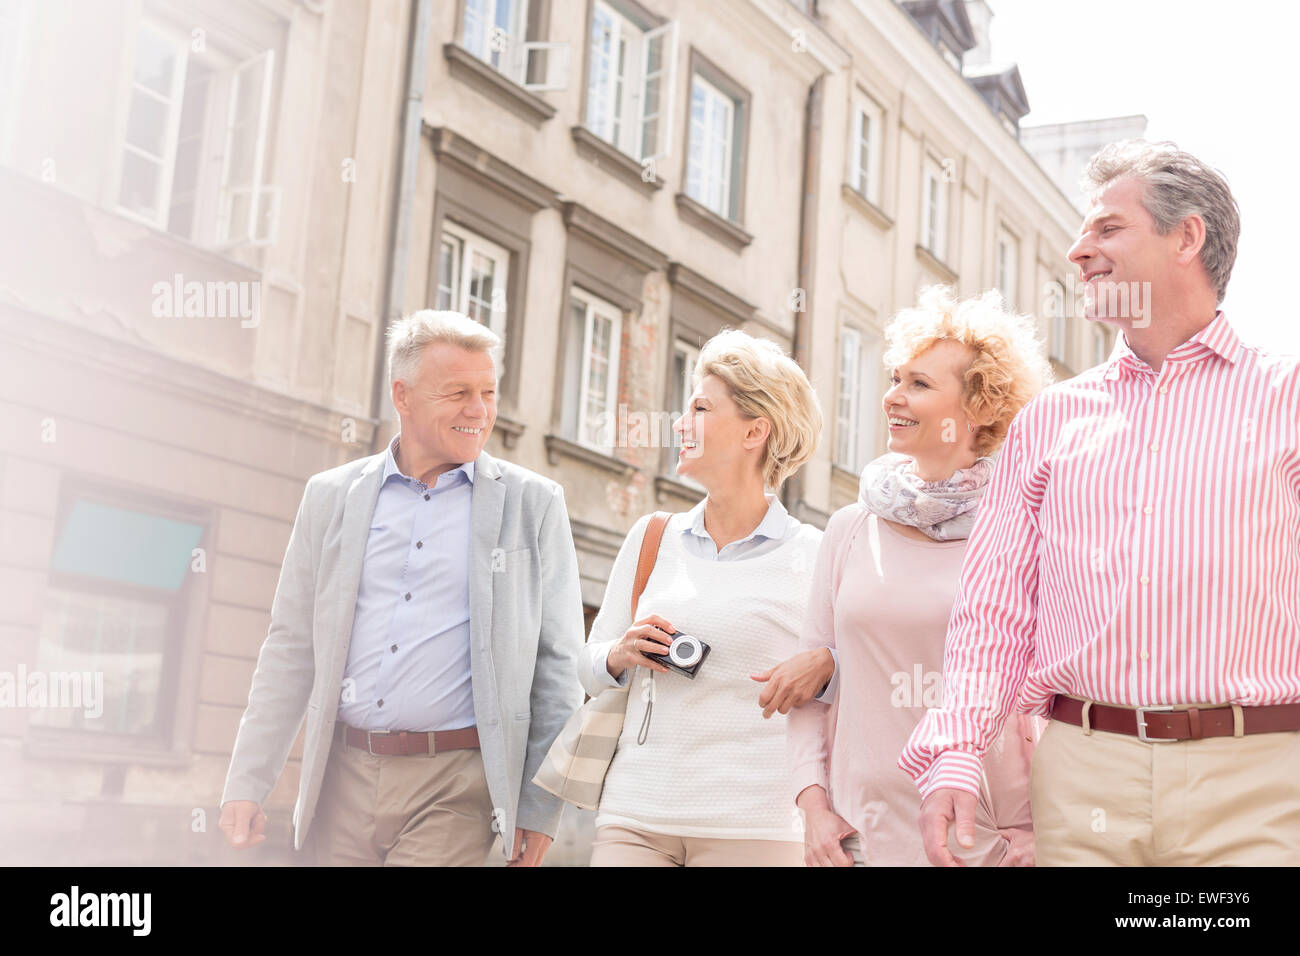 Happy friends talking while walking in city - Stock Image